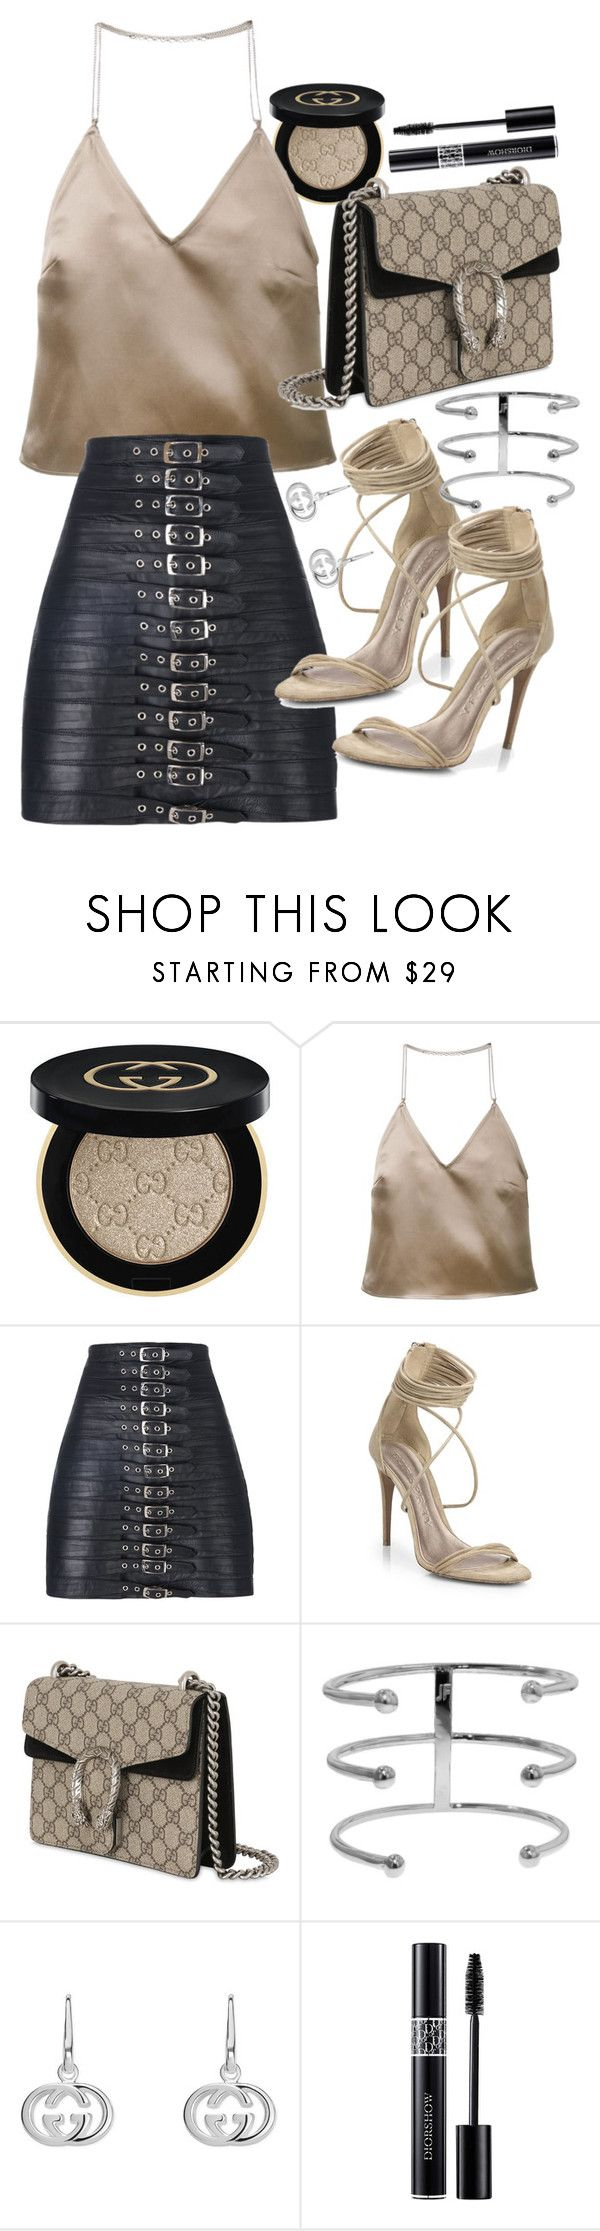 """""""Untitled #21238"""" by florencia95 ❤ liked on Polyvore featuring Gucci, Barbara Casasola, Manokhi, Burberry, Jennifer Fisher and Christian Dior"""